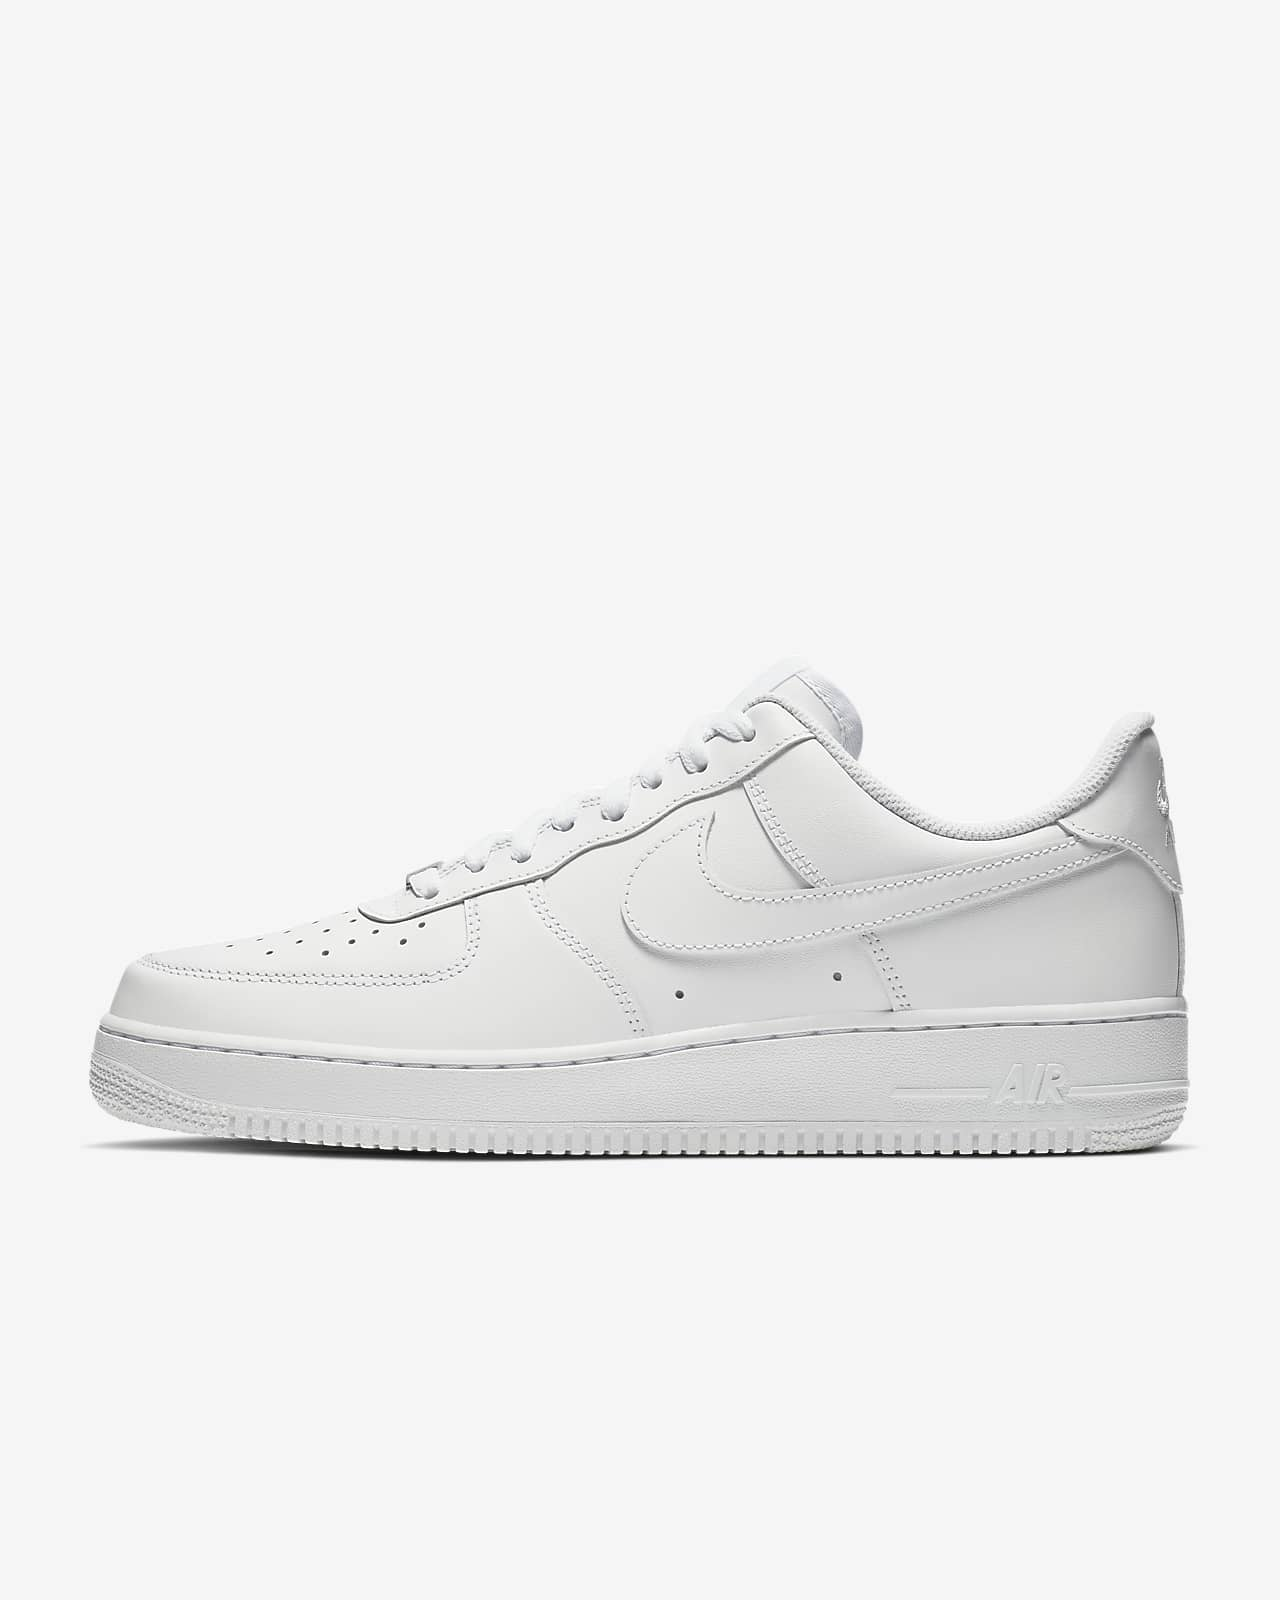 Dempsey Ricevitore Monet  Nike Air Force 1 '07 Men's Shoe. Nike.com